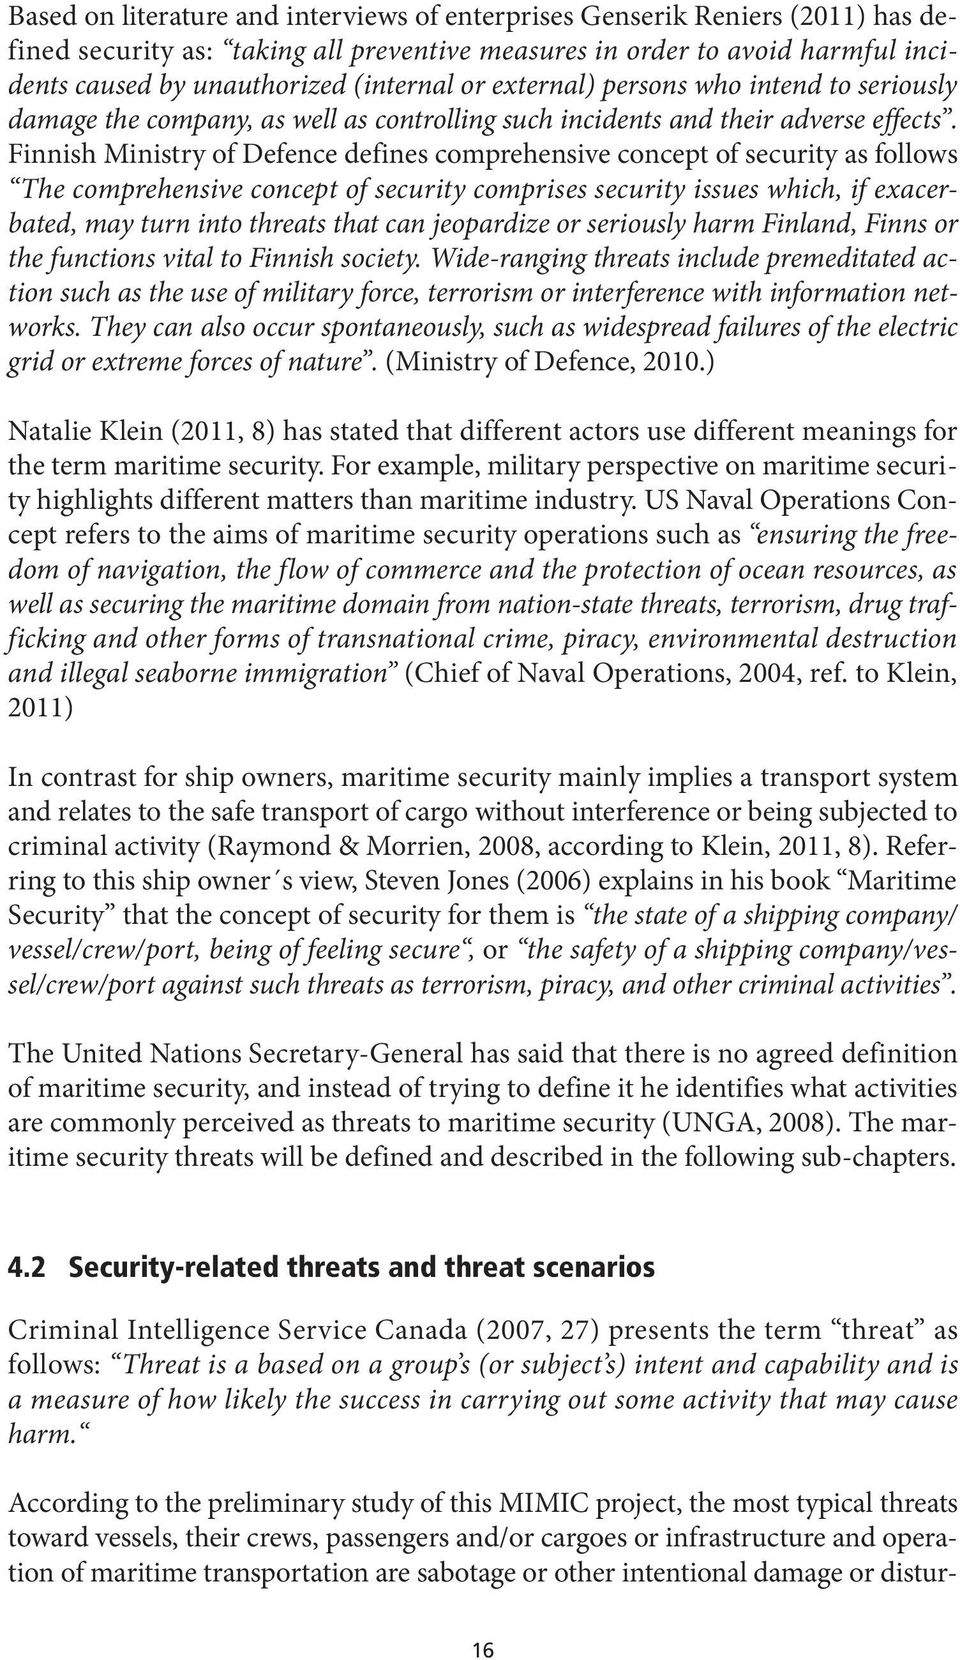 Finnish Ministry of Defence defines comprehensive concept of security as follows The comprehensive concept of security comprises security issues which, if exacerbated, may turn into threats that can